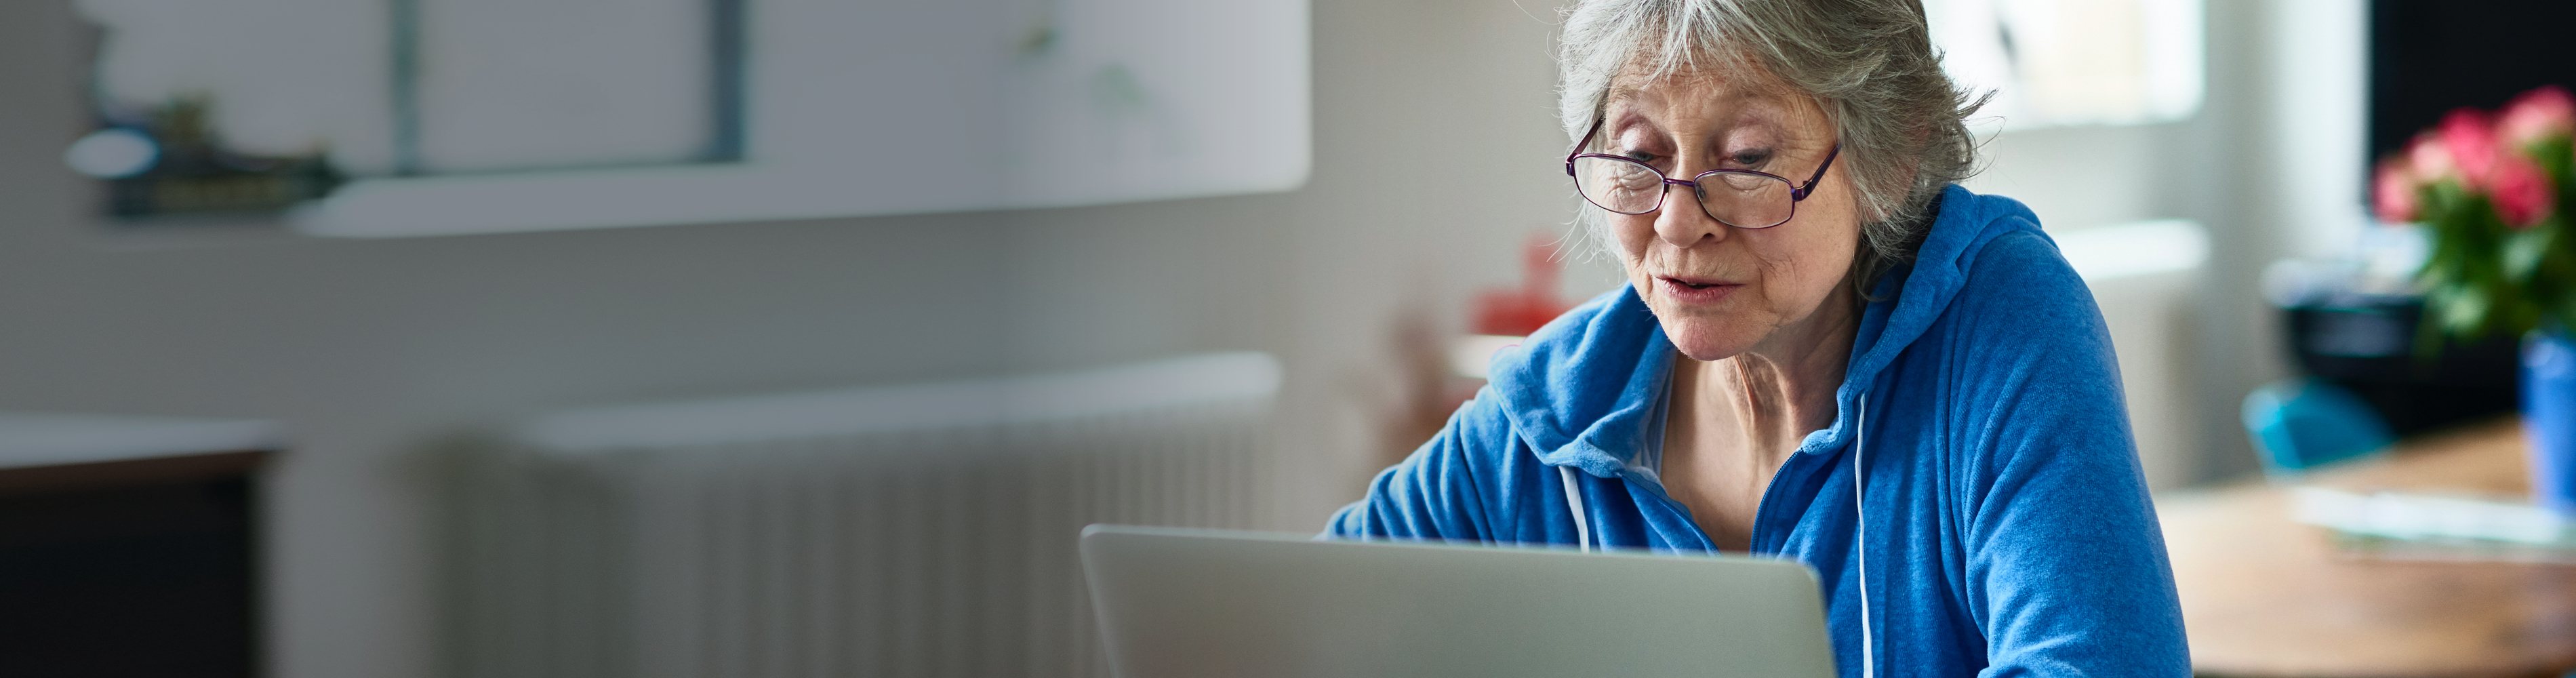 Senior woman researching on the computer